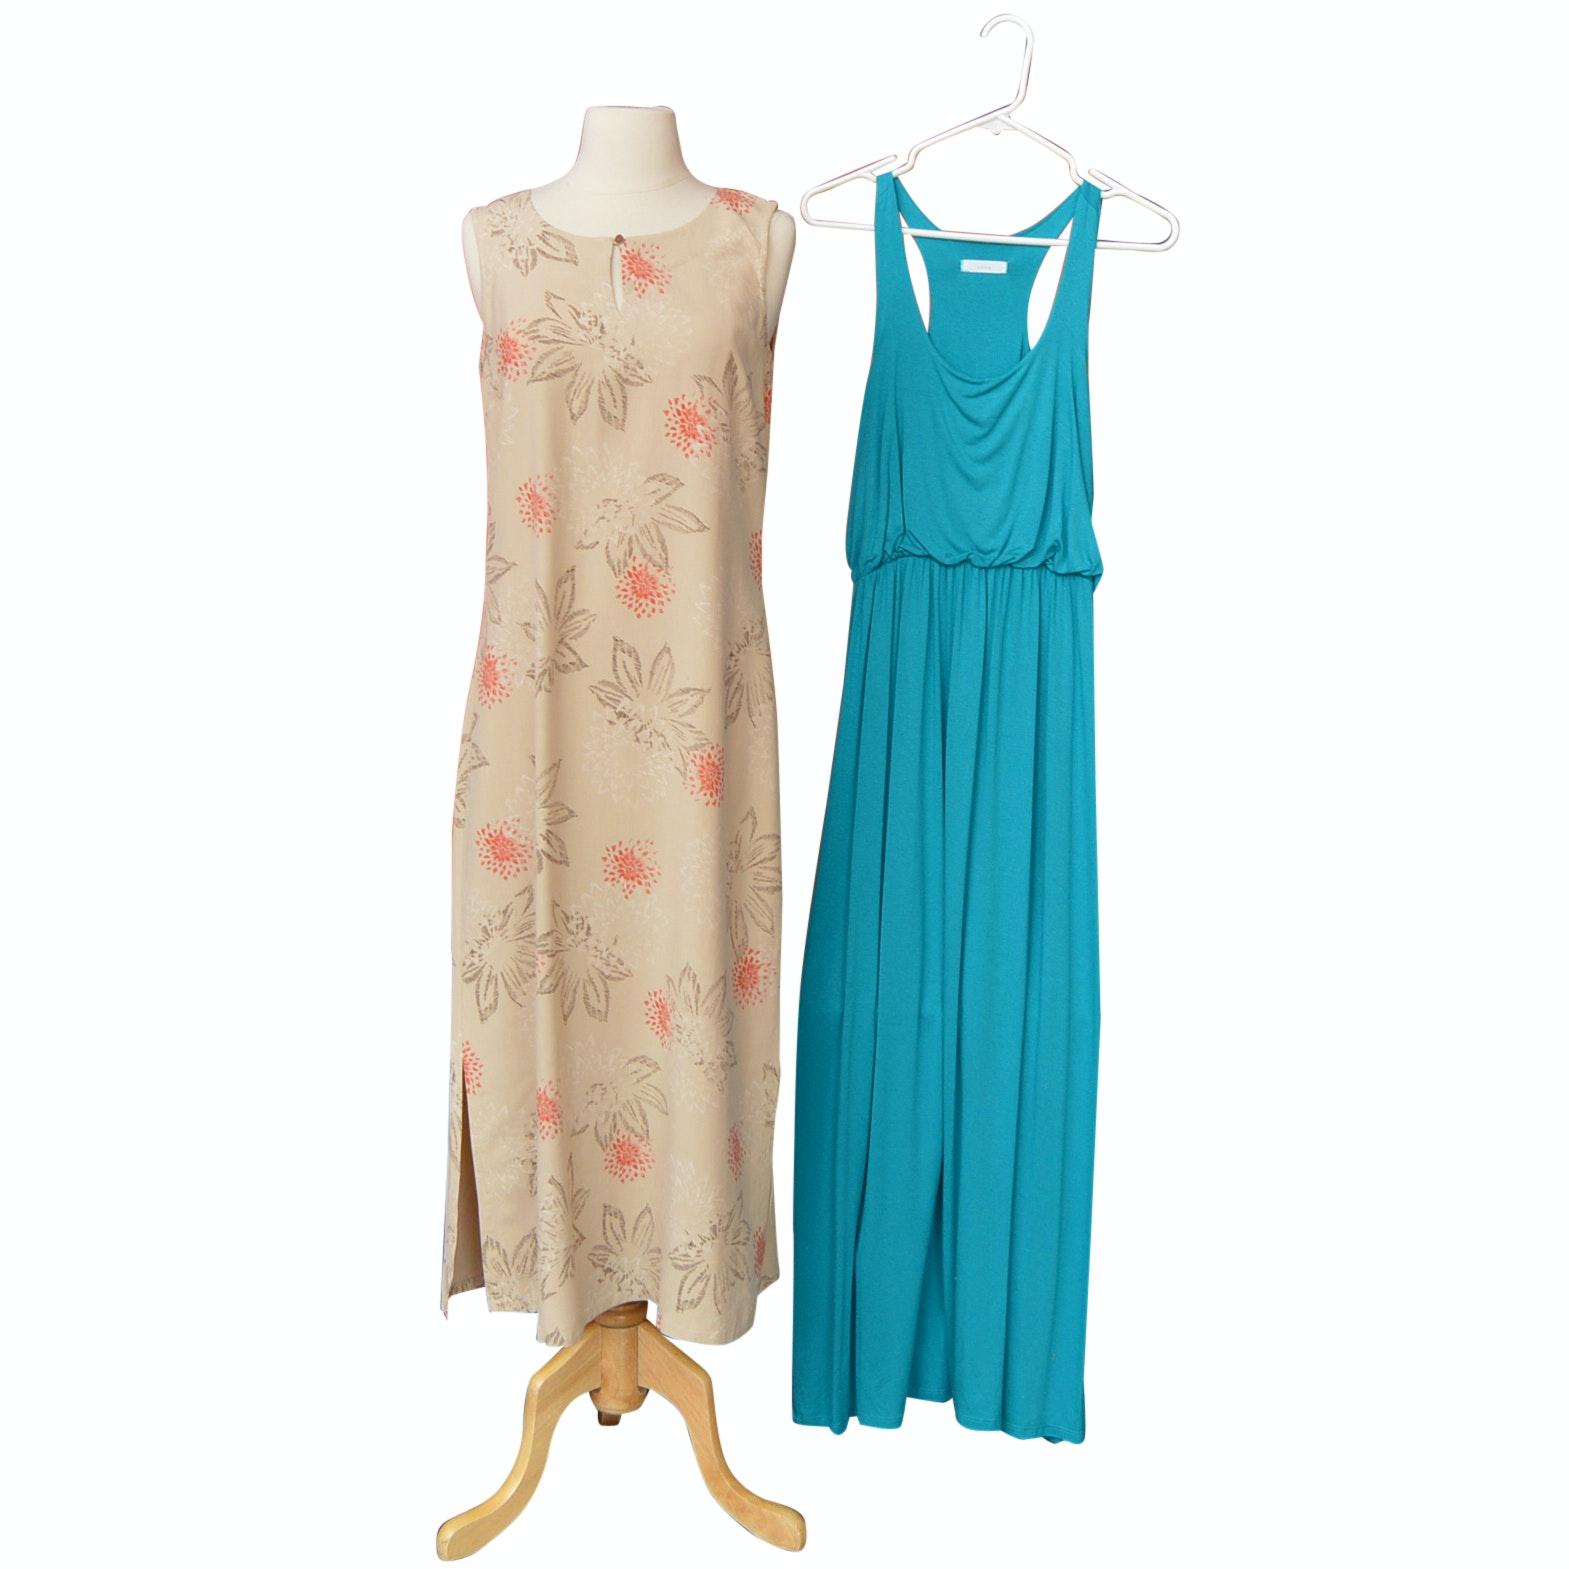 Women's Sleeveless Maxi Dresses